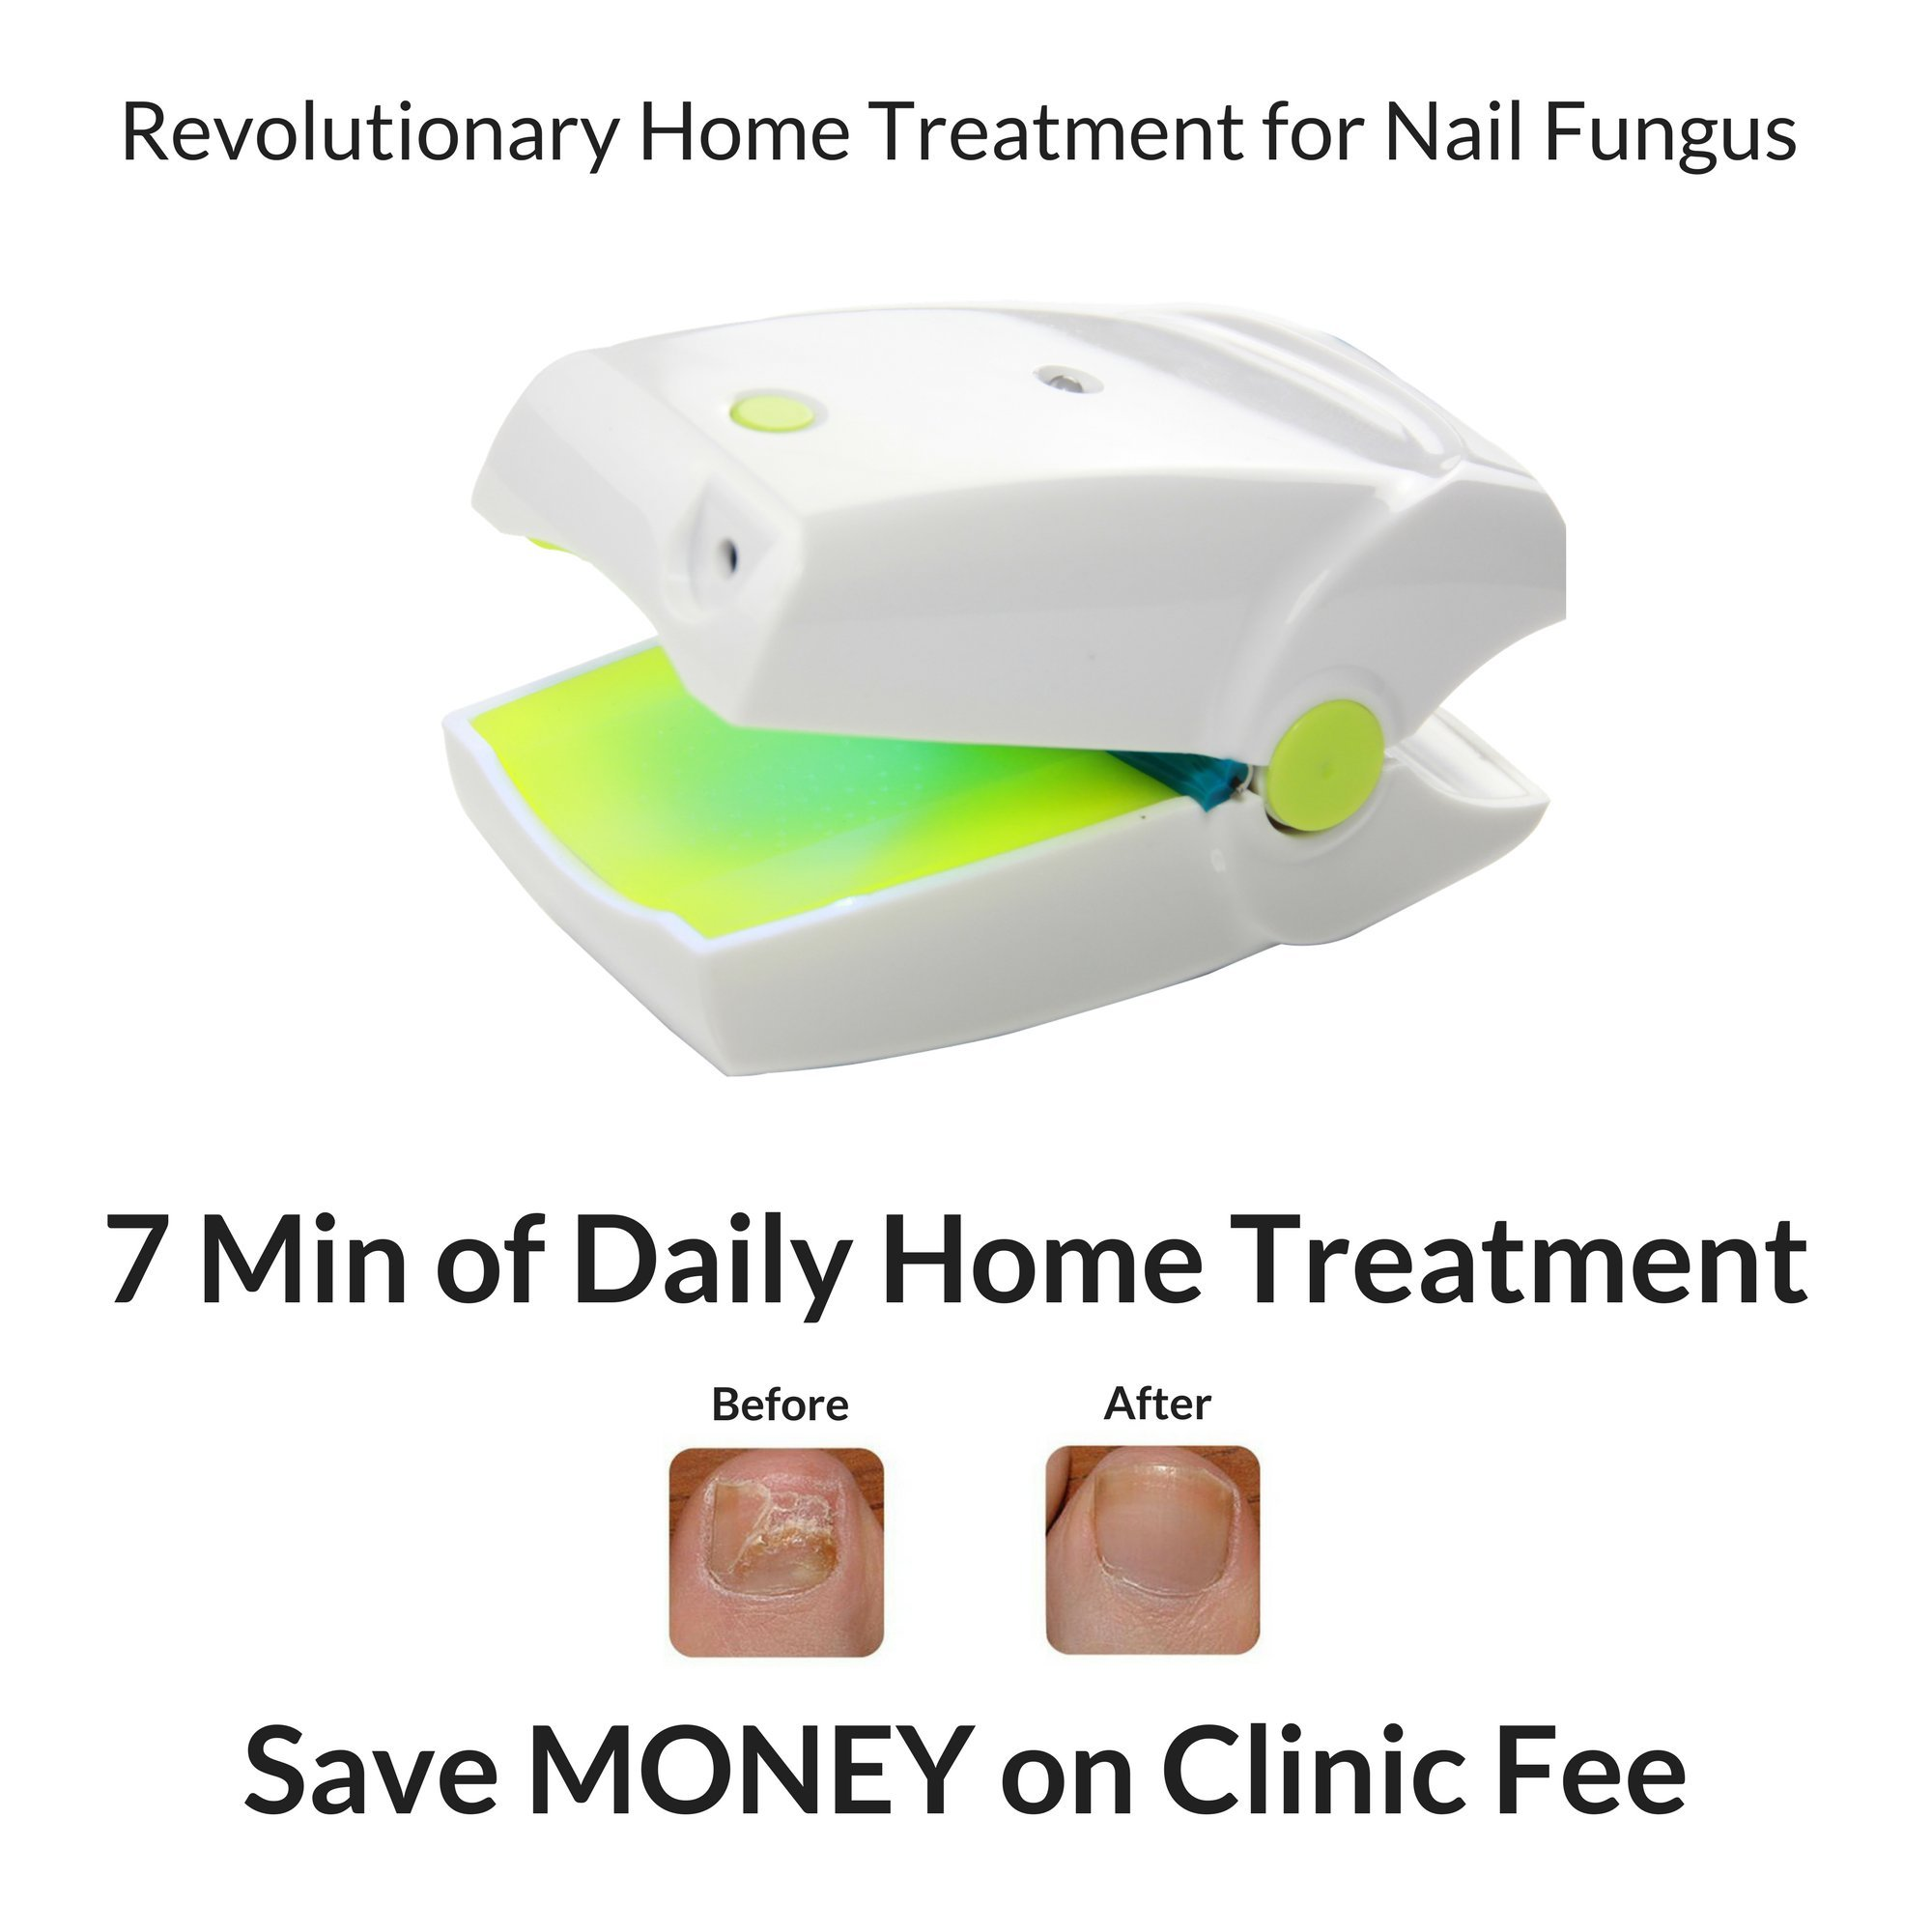 Highly Effective Cherrish Rechargeable Nail Fungus Laser Treatment Device for Onychomycosis Cure. This Instrument is for Home use and Treats Nail Fungus and infections. Easy use and Fast Results.